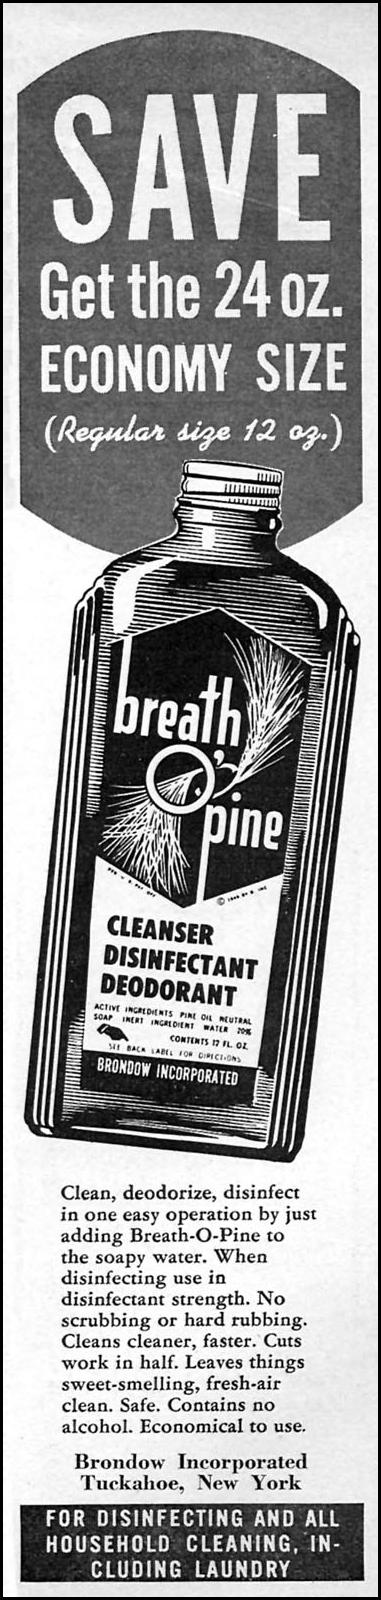 BREATH O' PINE CLEANSER WOMAN'S DAY 06/01/1958 p. 99